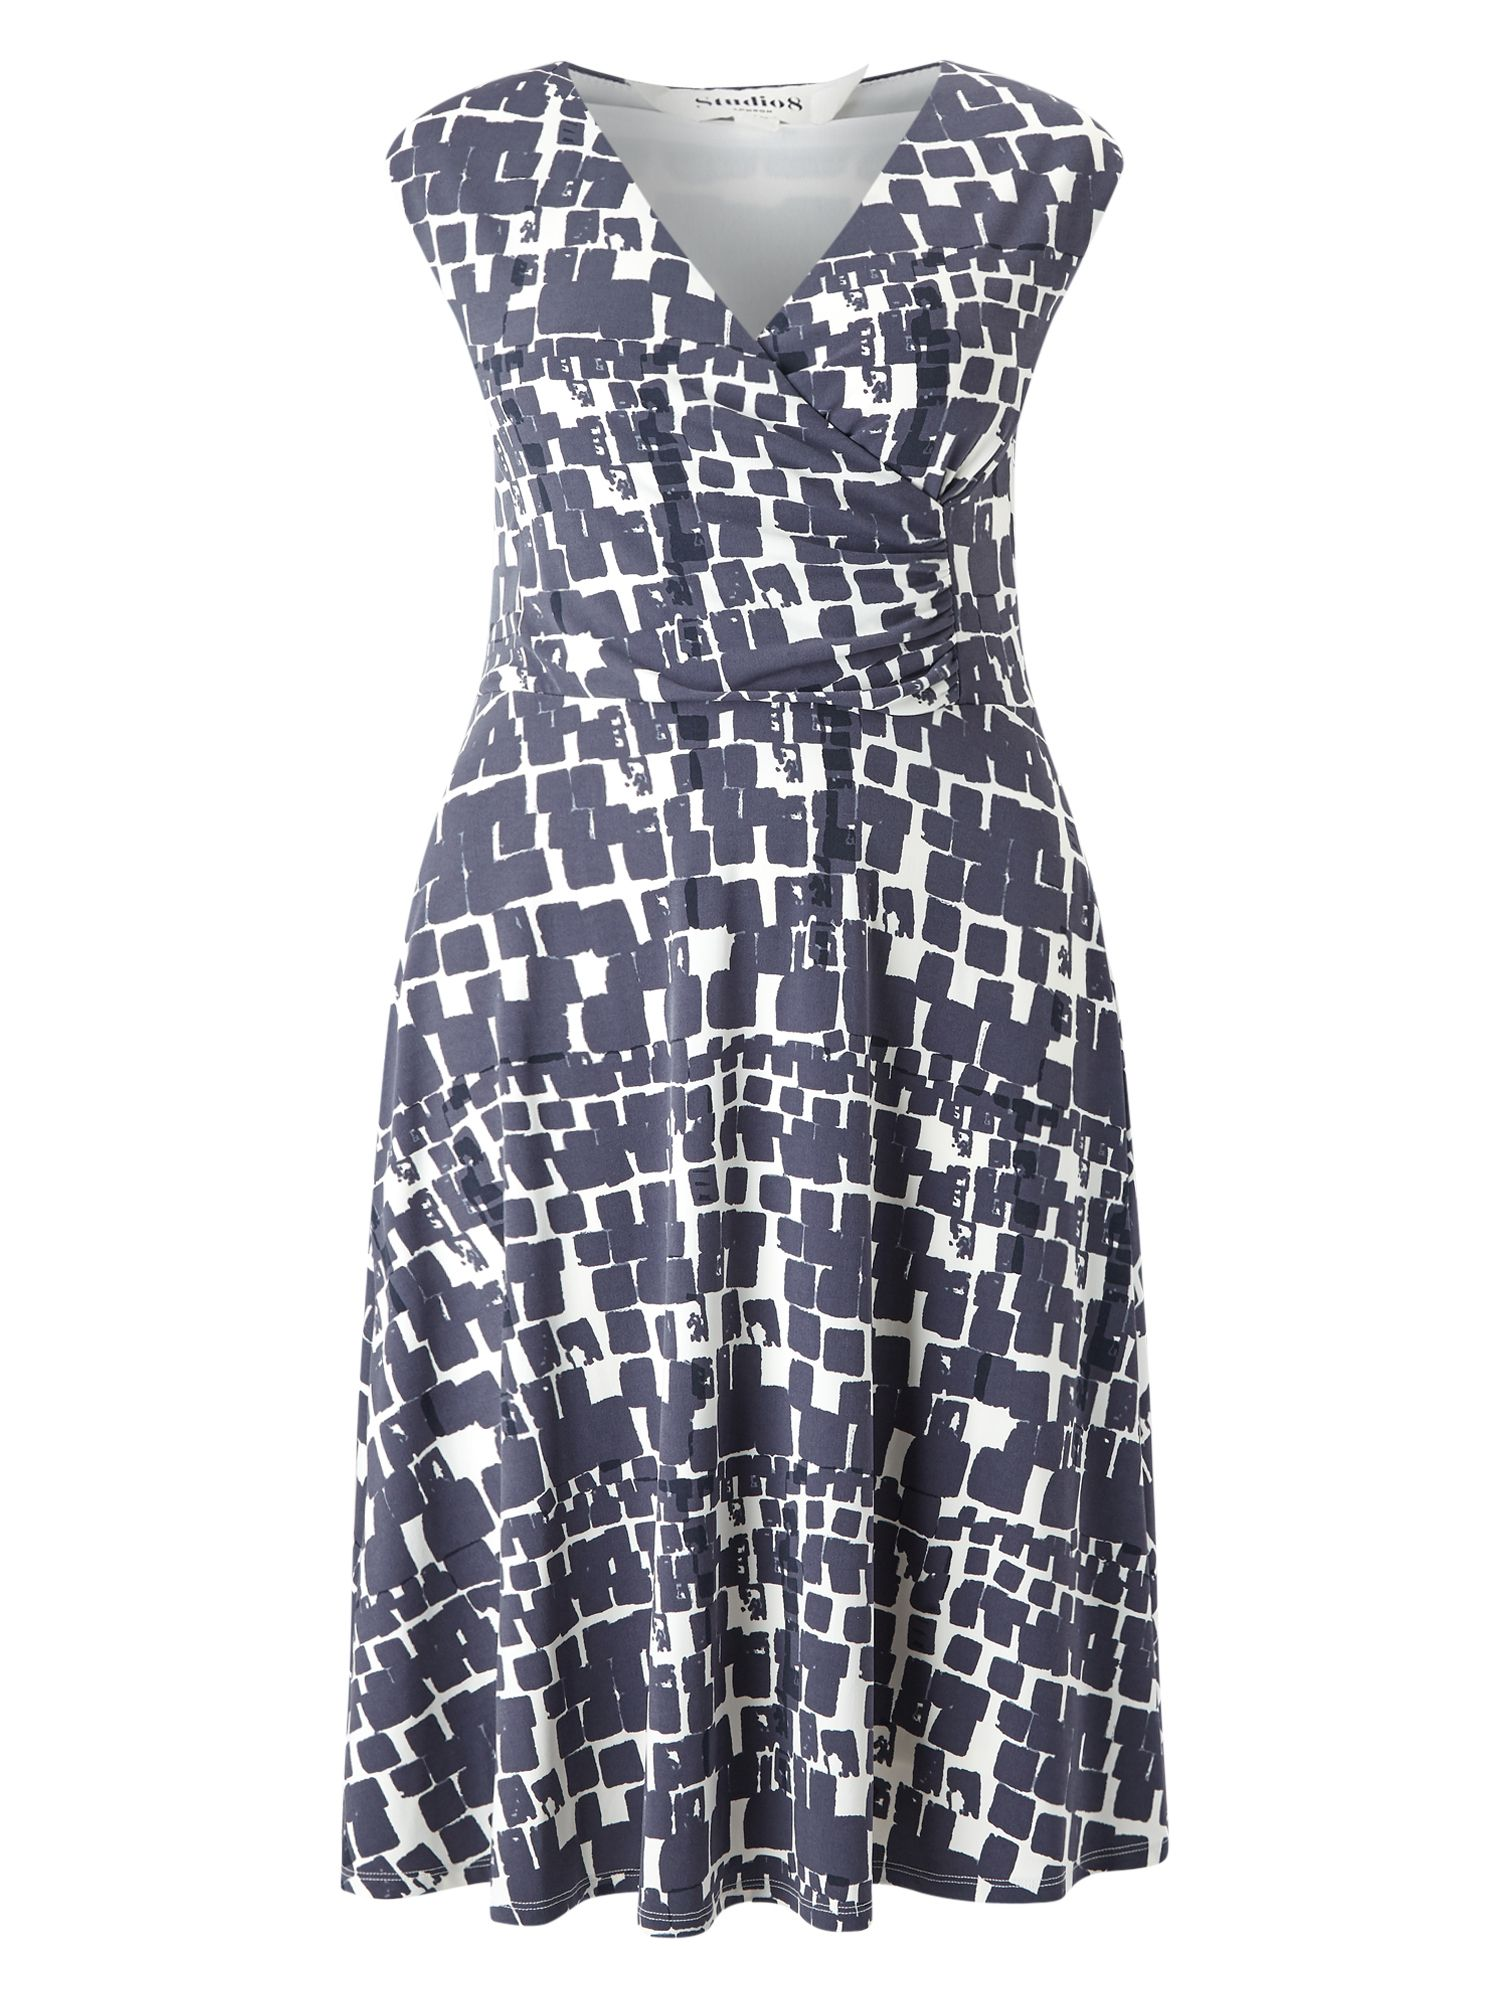 Studio 8 Cybil Dress, Grey